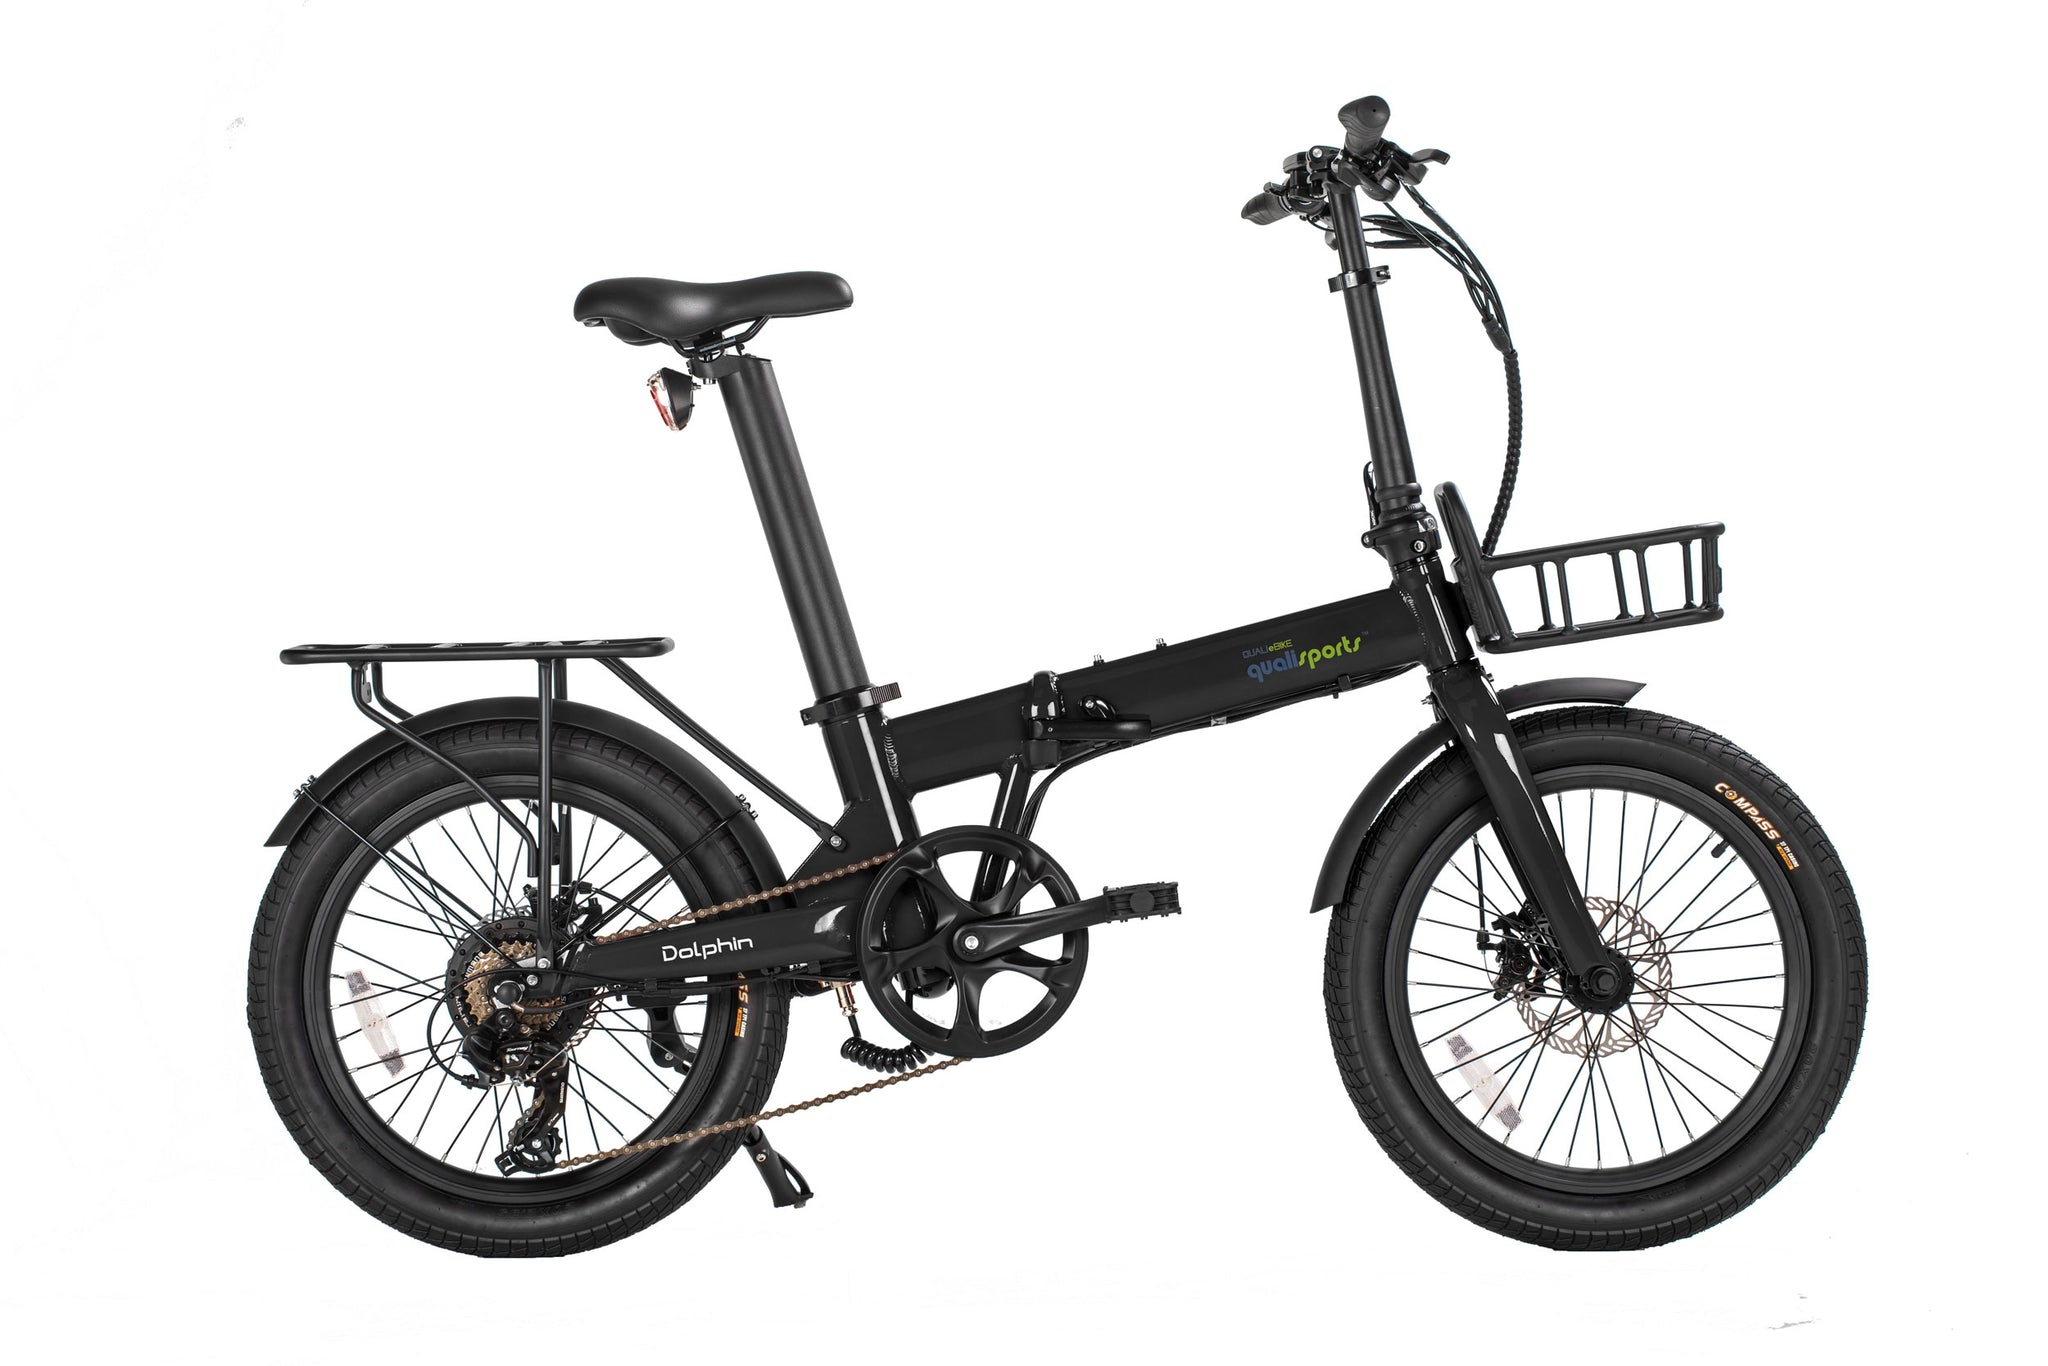 20inch-Folding-Electric-Bike-Dolphin-Rear-Racks-by-Qualisports INC